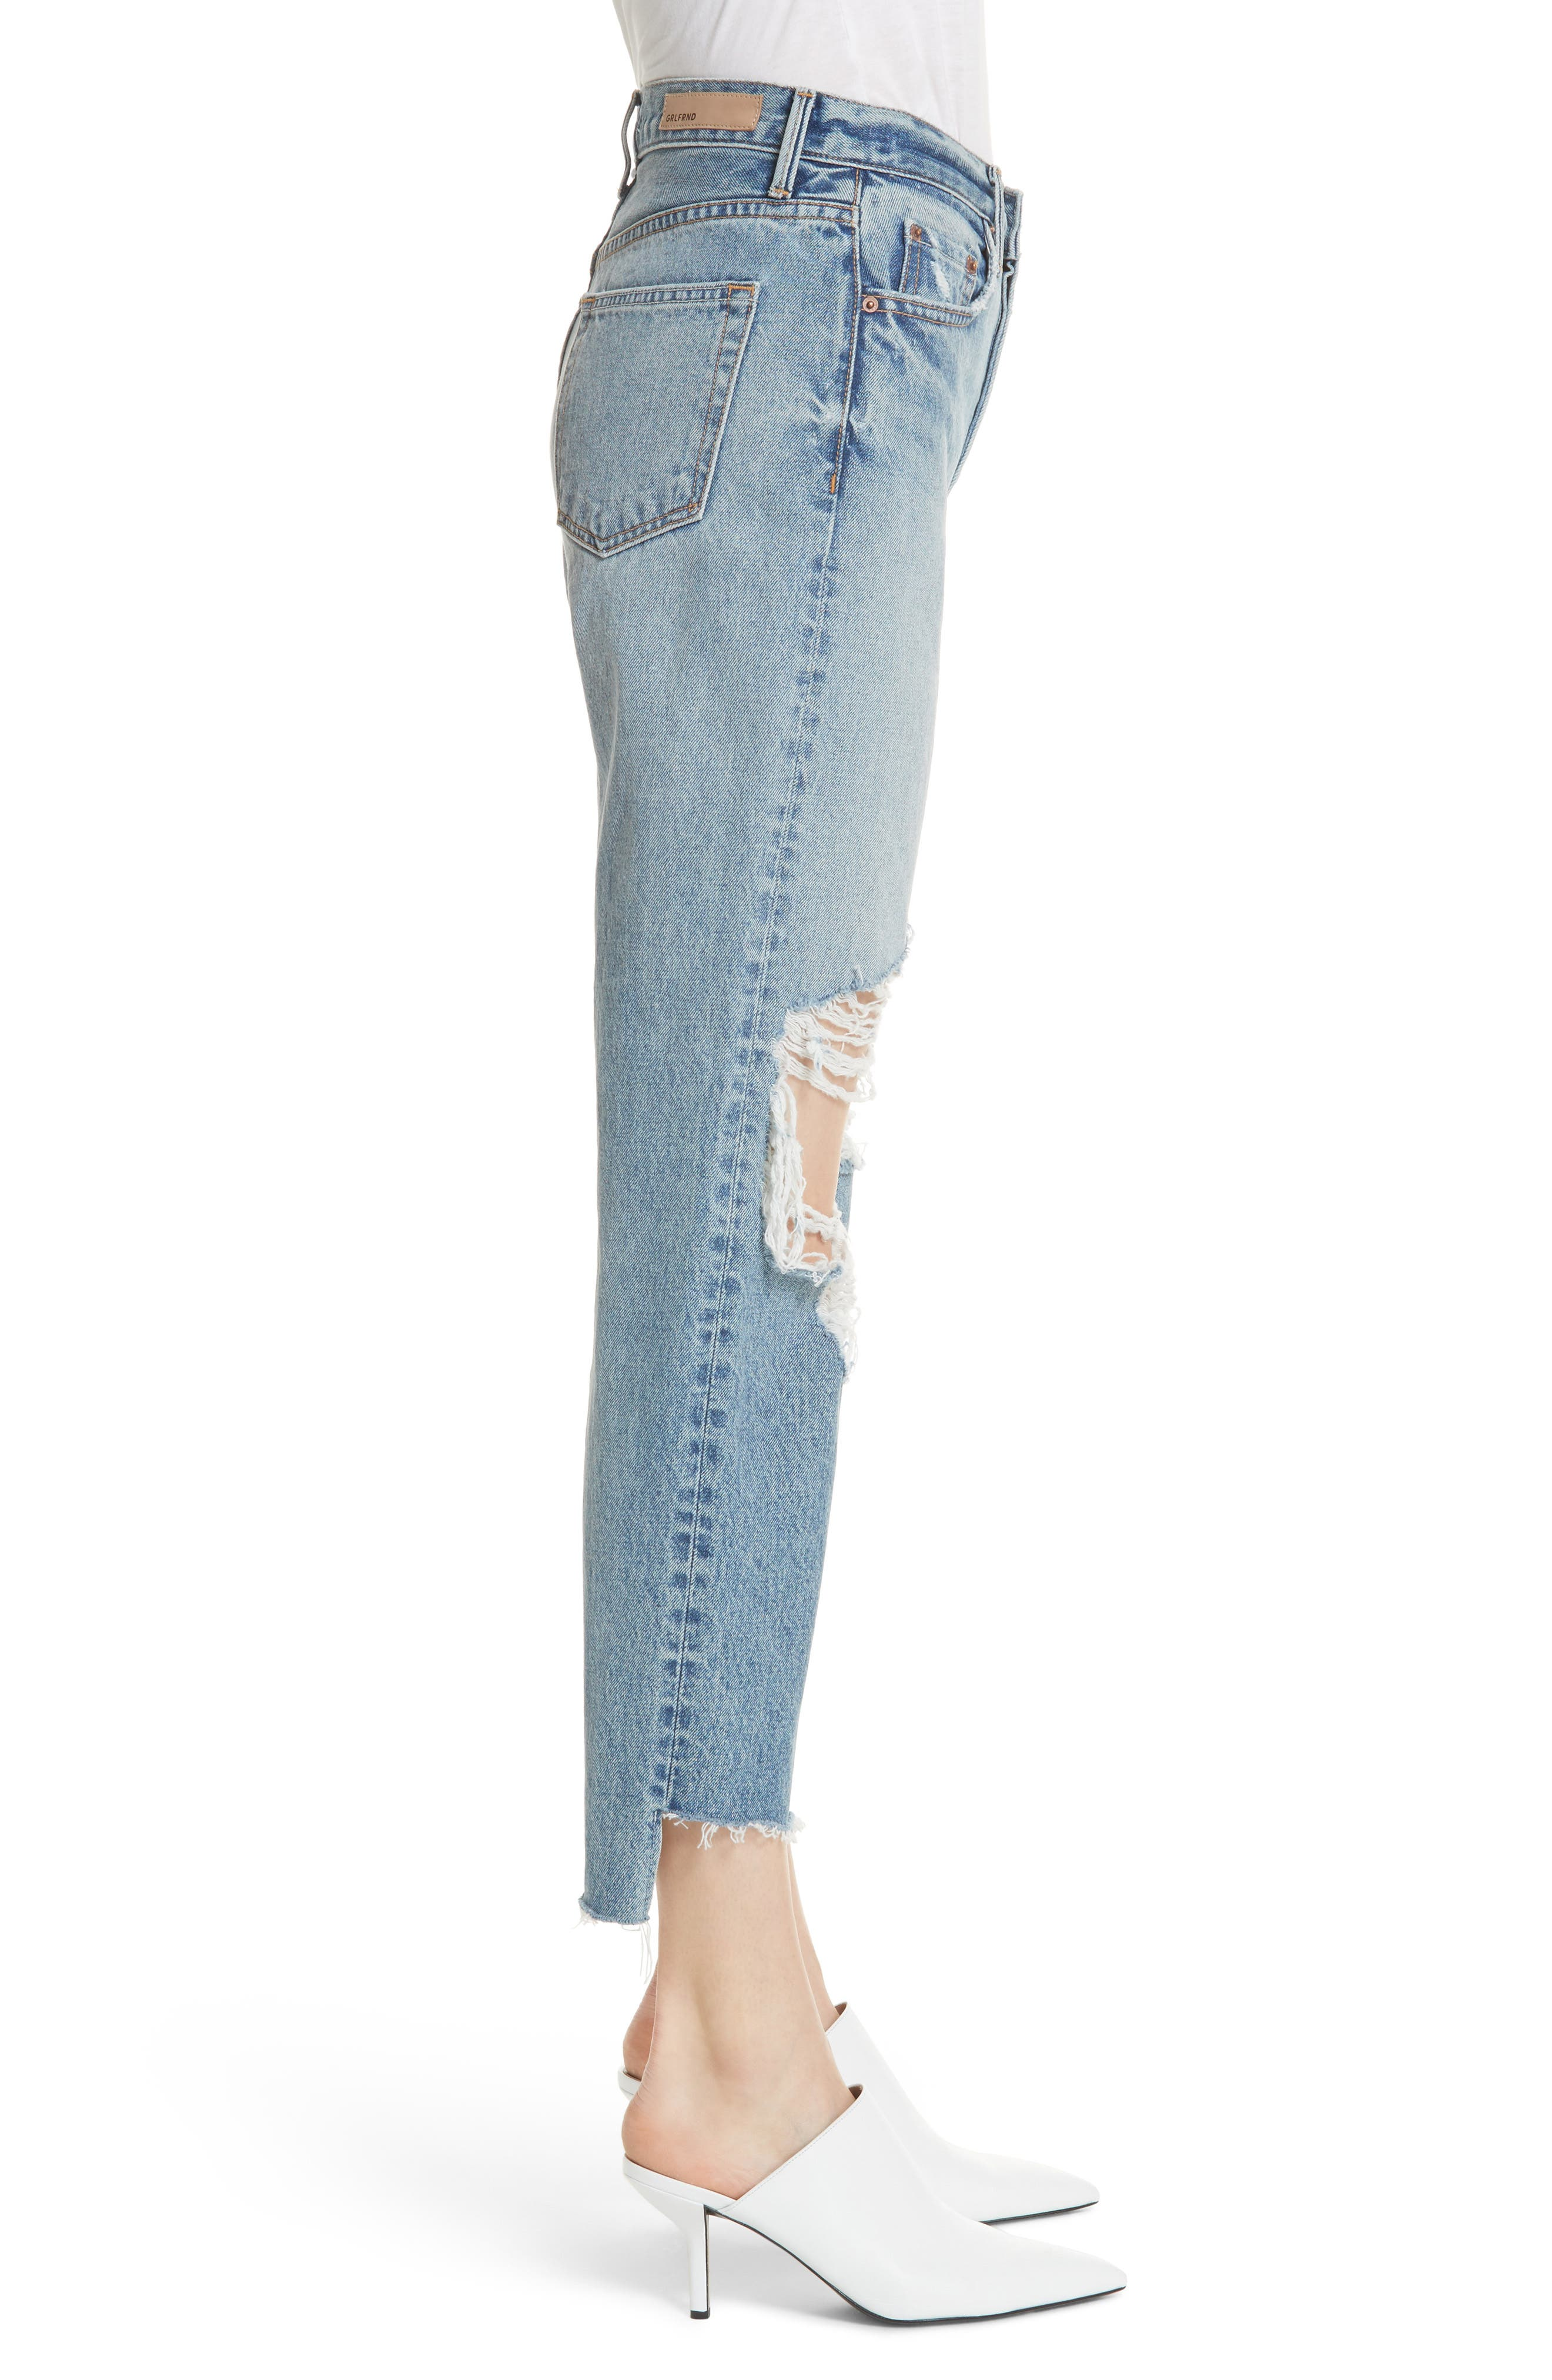 Helena Ripped Rigid High Waist Straight Jeans,                             Alternate thumbnail 3, color,                             487